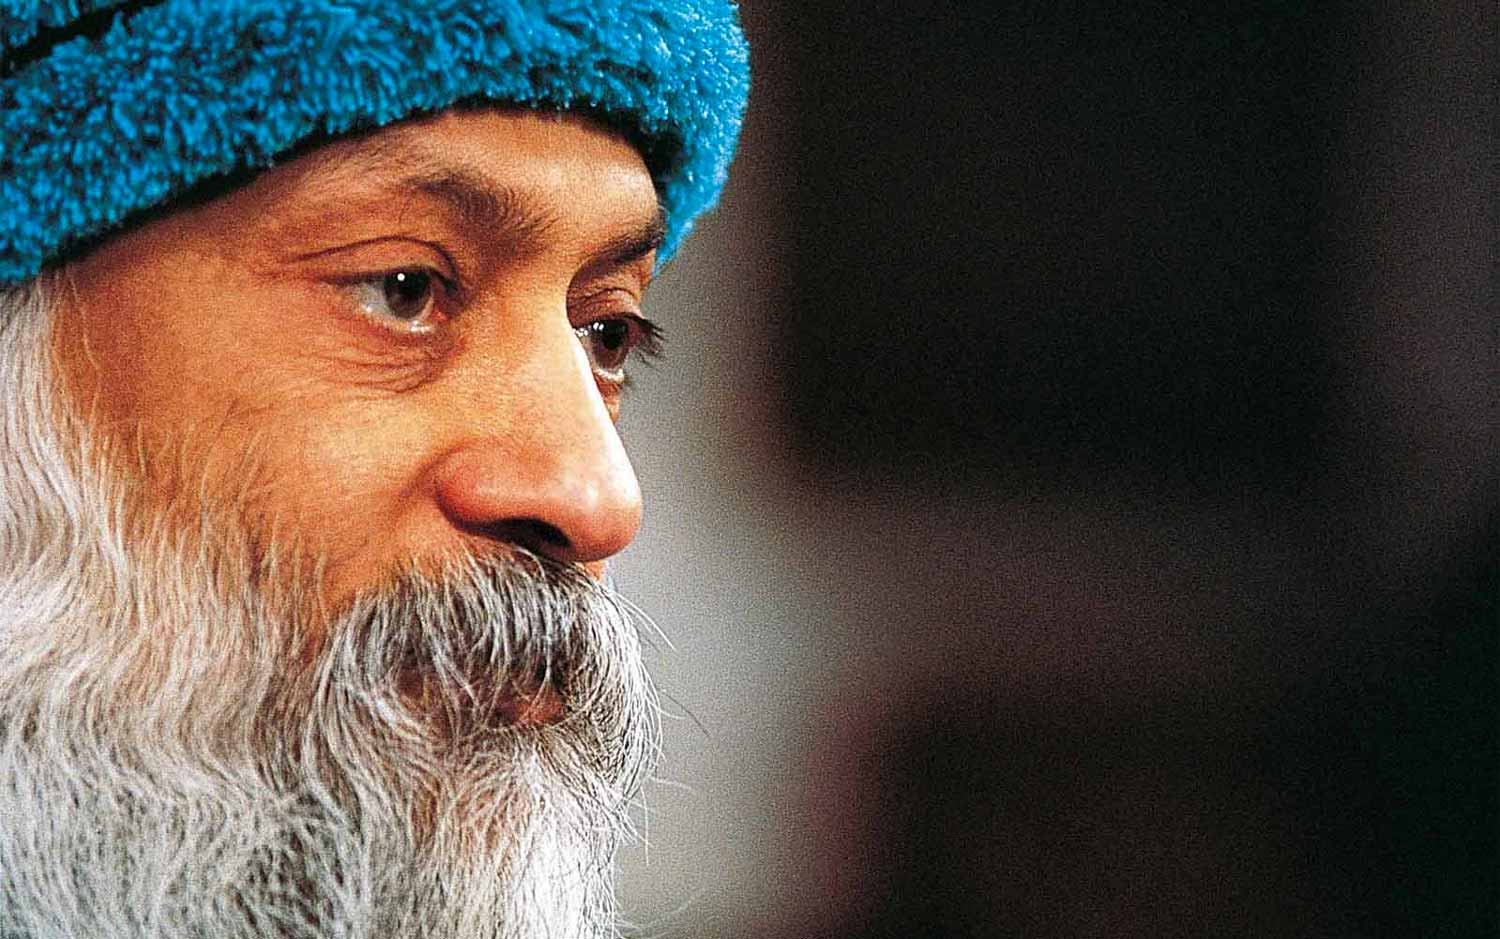 Closeup of Osho's face